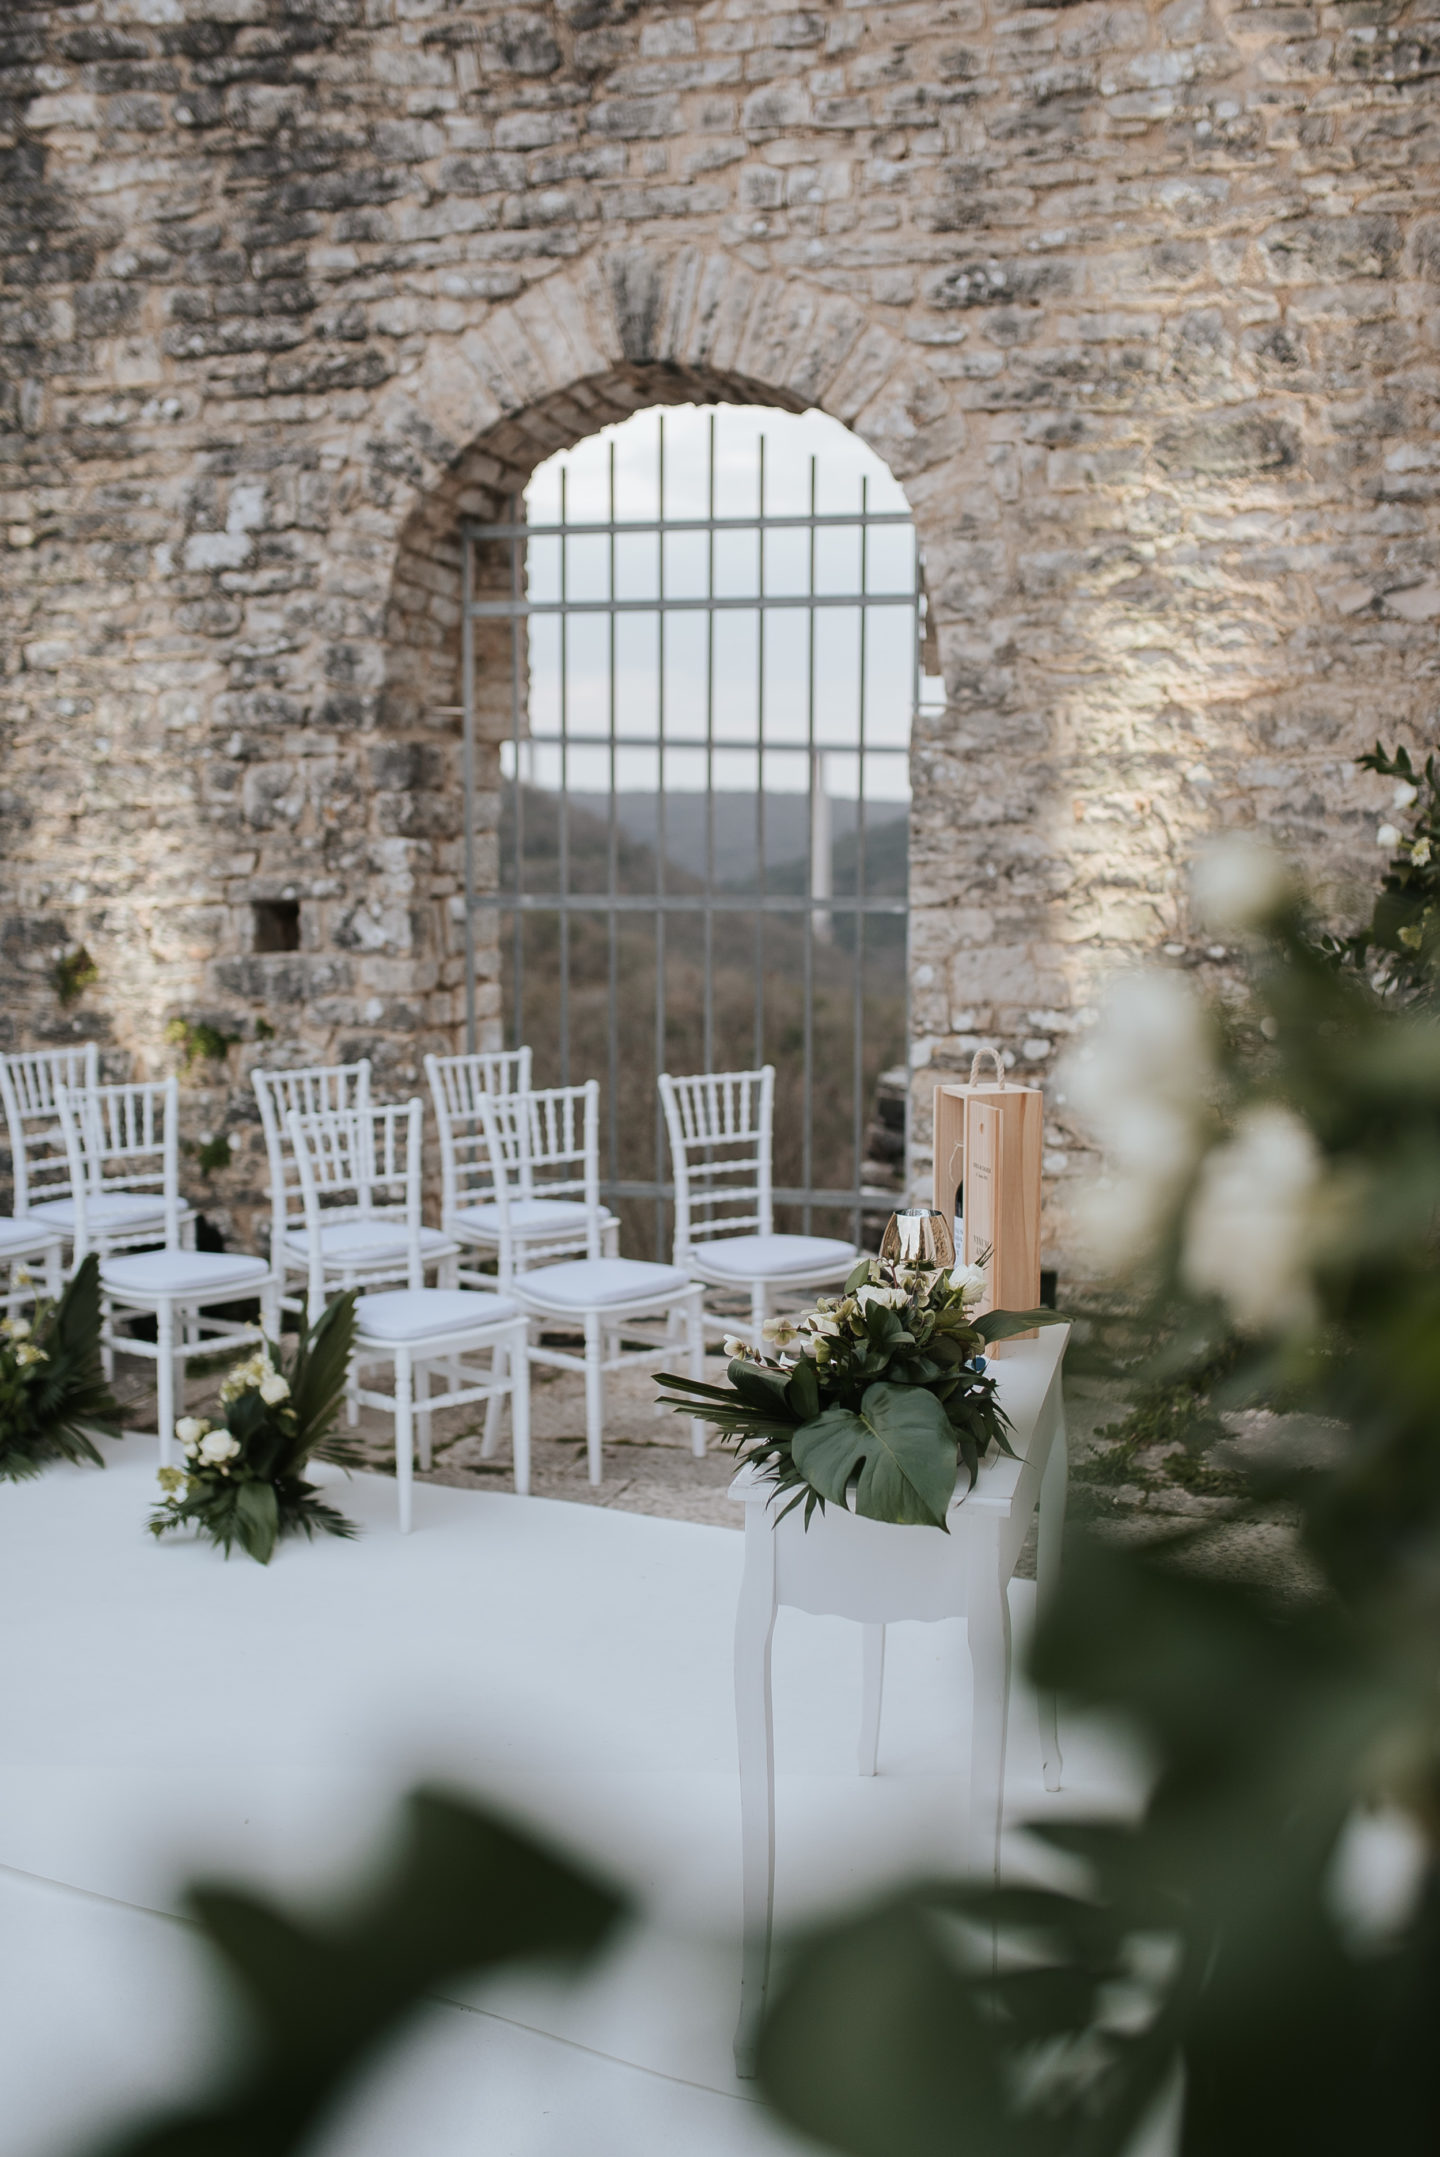 Botanical Castle Wedding with Contemporary Vibes at Dvigrad Ruins, Croatia